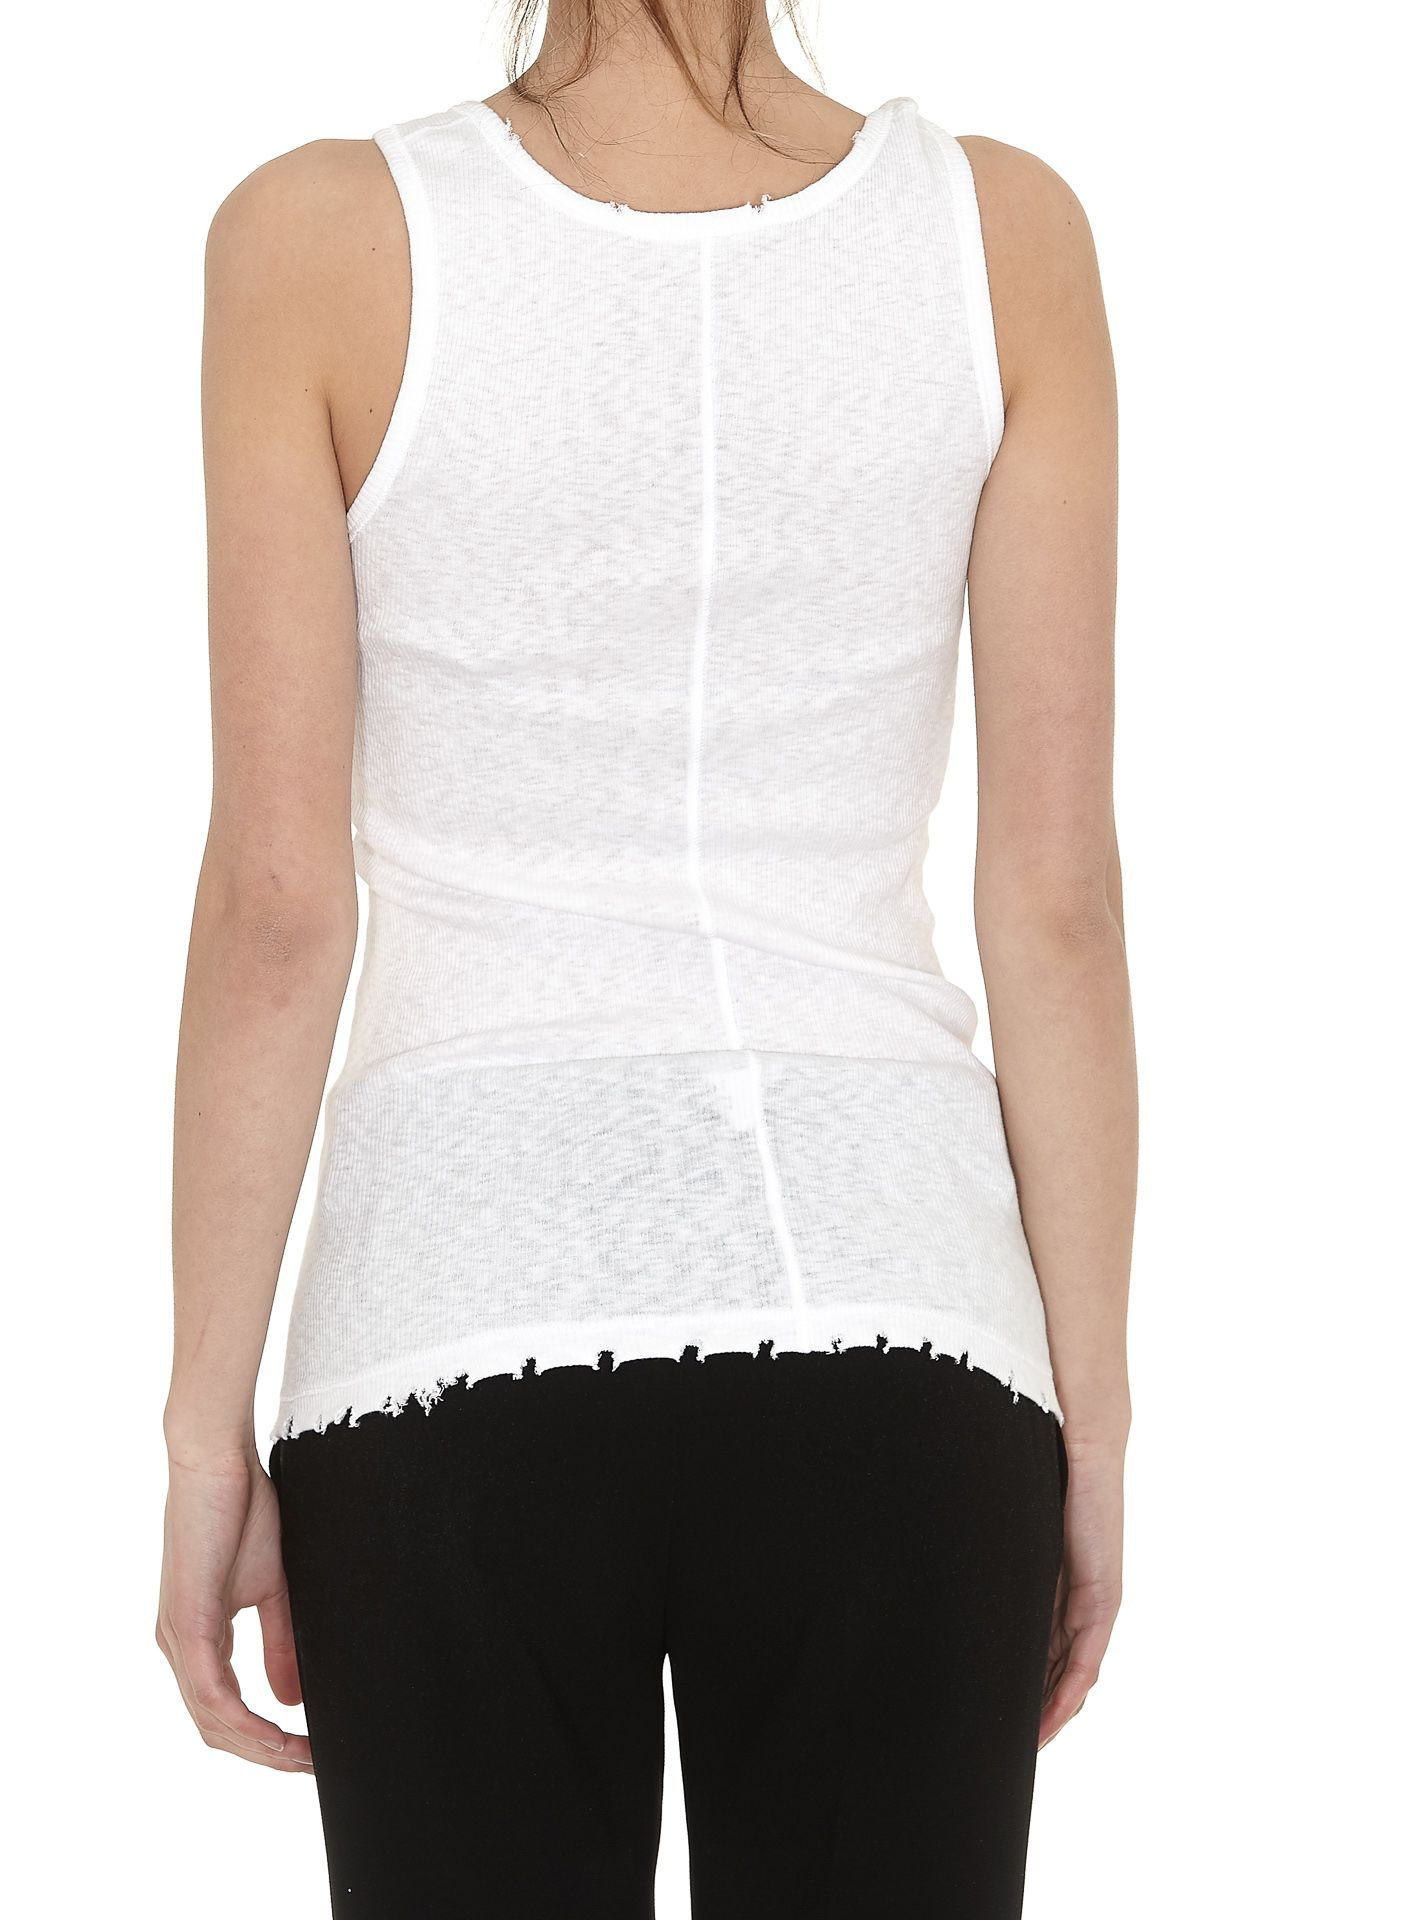 Sunshine chewed up top Helmut Lang Clearance For Cheap Perfect Cheap Online Free Shipping Visit vDh8R